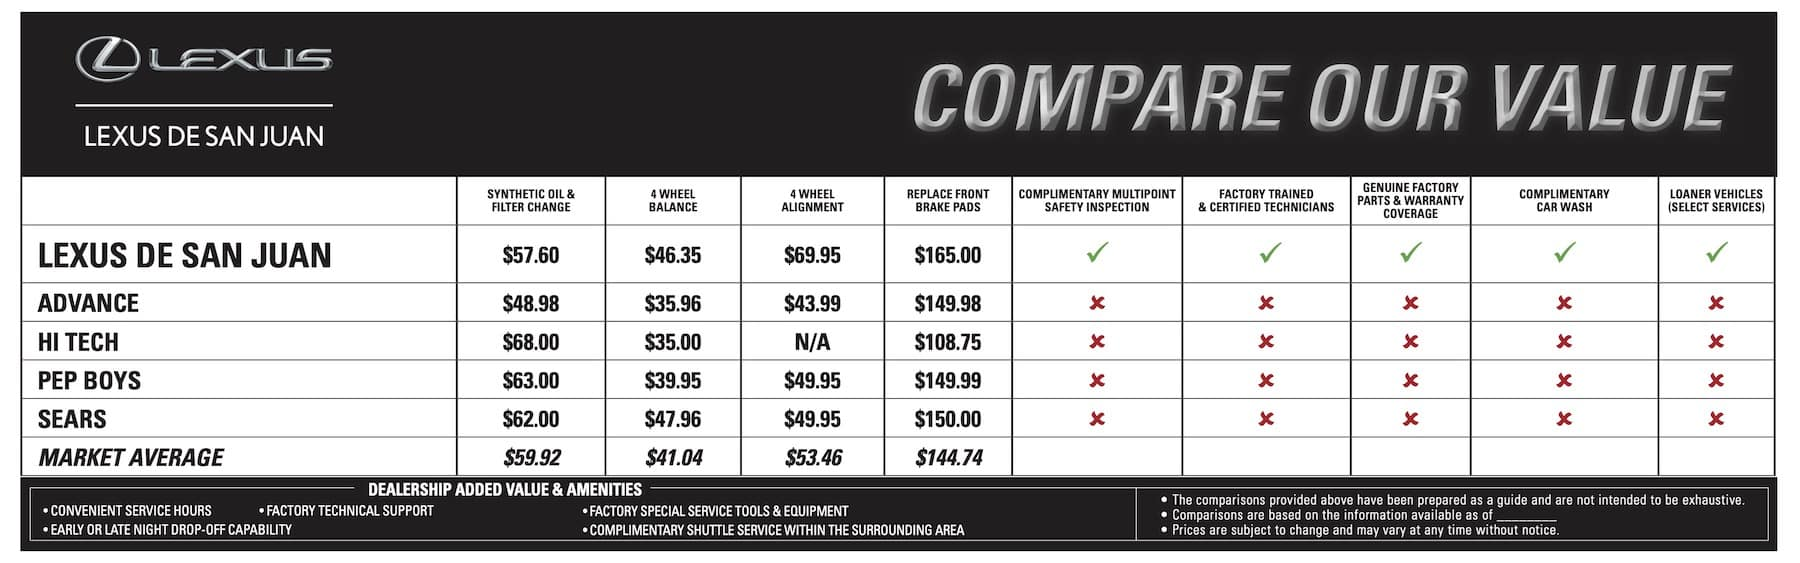 Compare our value